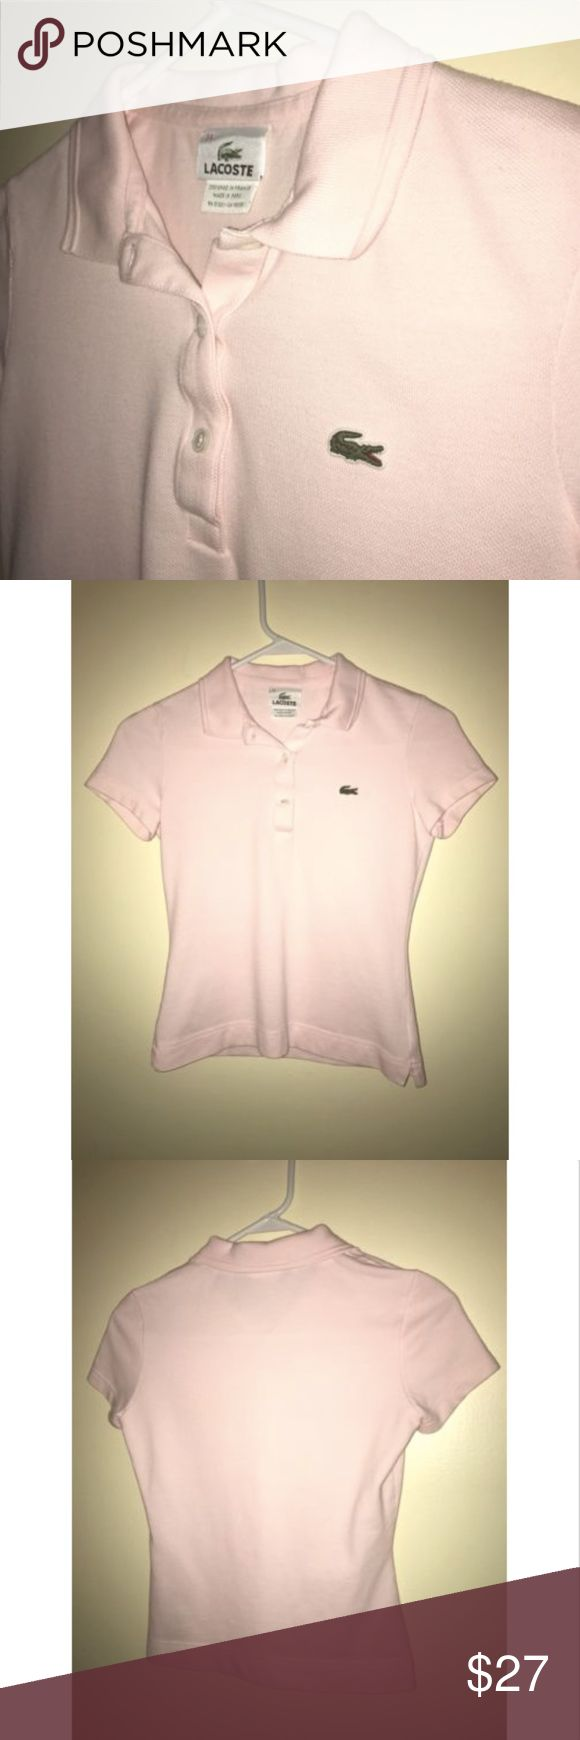 """Authentic Lacoste Pink Coral Polo Shirt Sz 34 XS PLEASE NOTE MEASUREMENTS BELOW TO ENSURE PROPER FIT  Size: 34 (XS) Color: Light Coral Tag Measurements- 34 Material: Cotton Blend Condition: Excellent Features: Short Sleeve, Soft Cotton, I HAVE PROVIDED A PHOTO OF THE INSIDE """"DEVANLAY"""" TAG CONFIRMING AUTHENTICITY. Flaws: None. Please refer to measurements below.  Measurements:  Chest - 15.5 inches  Shoulder - 13.5 inches  Sleeve - 5.5 inches  Length - 19.5 inches Lacoste Tops Tees - Short…"""